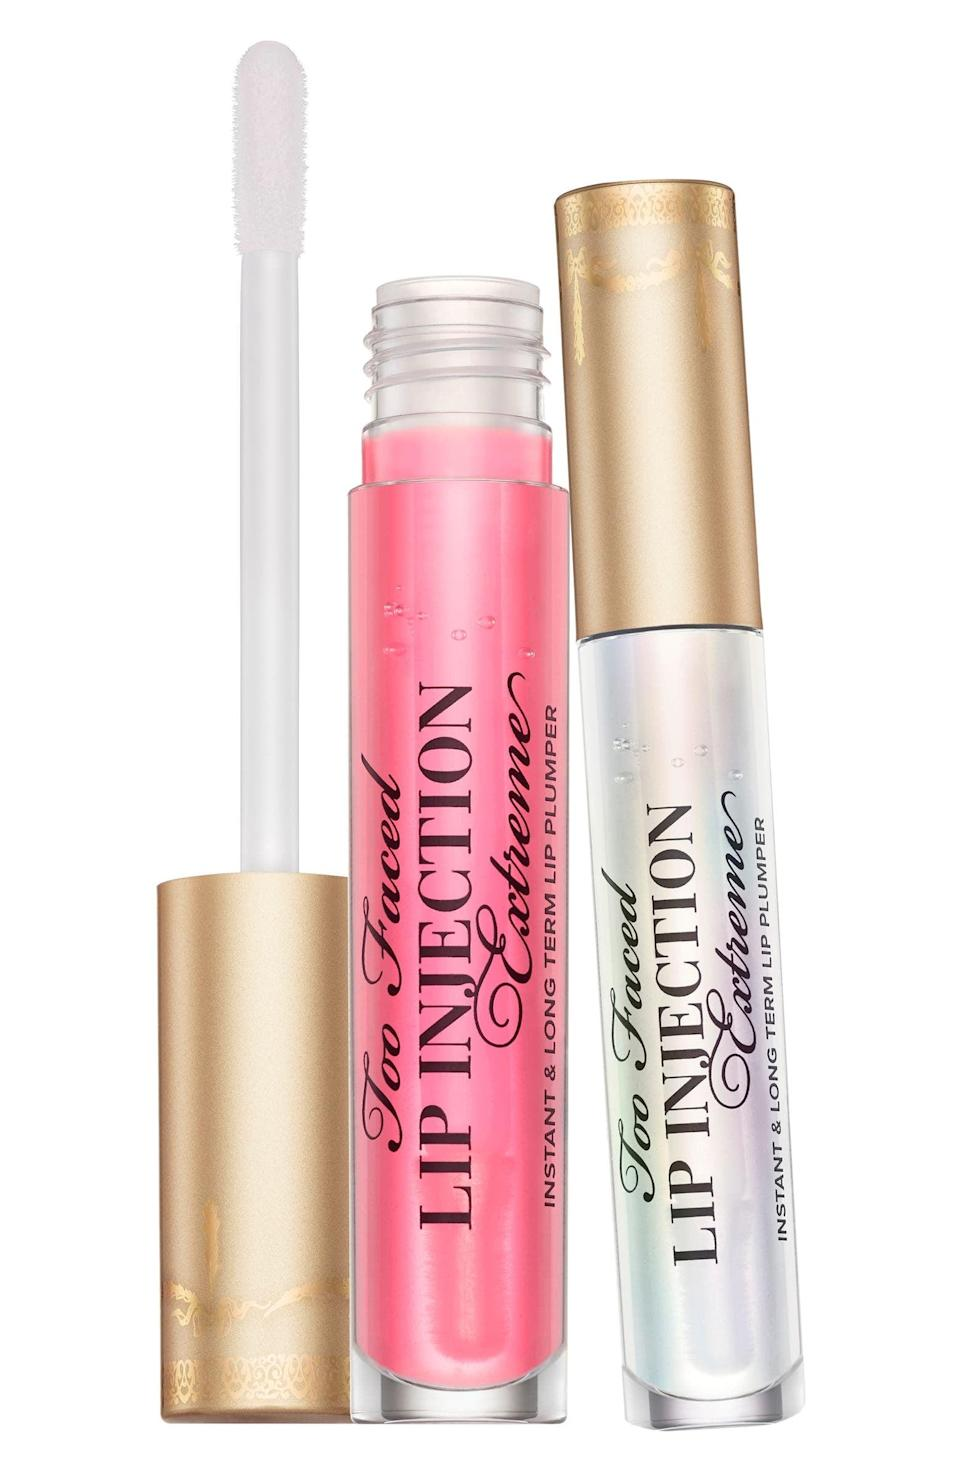 <p><span>Too Faced Full Size Lip Injection Extreme Lip Plumper Set</span> ($39, originally $58)</p>